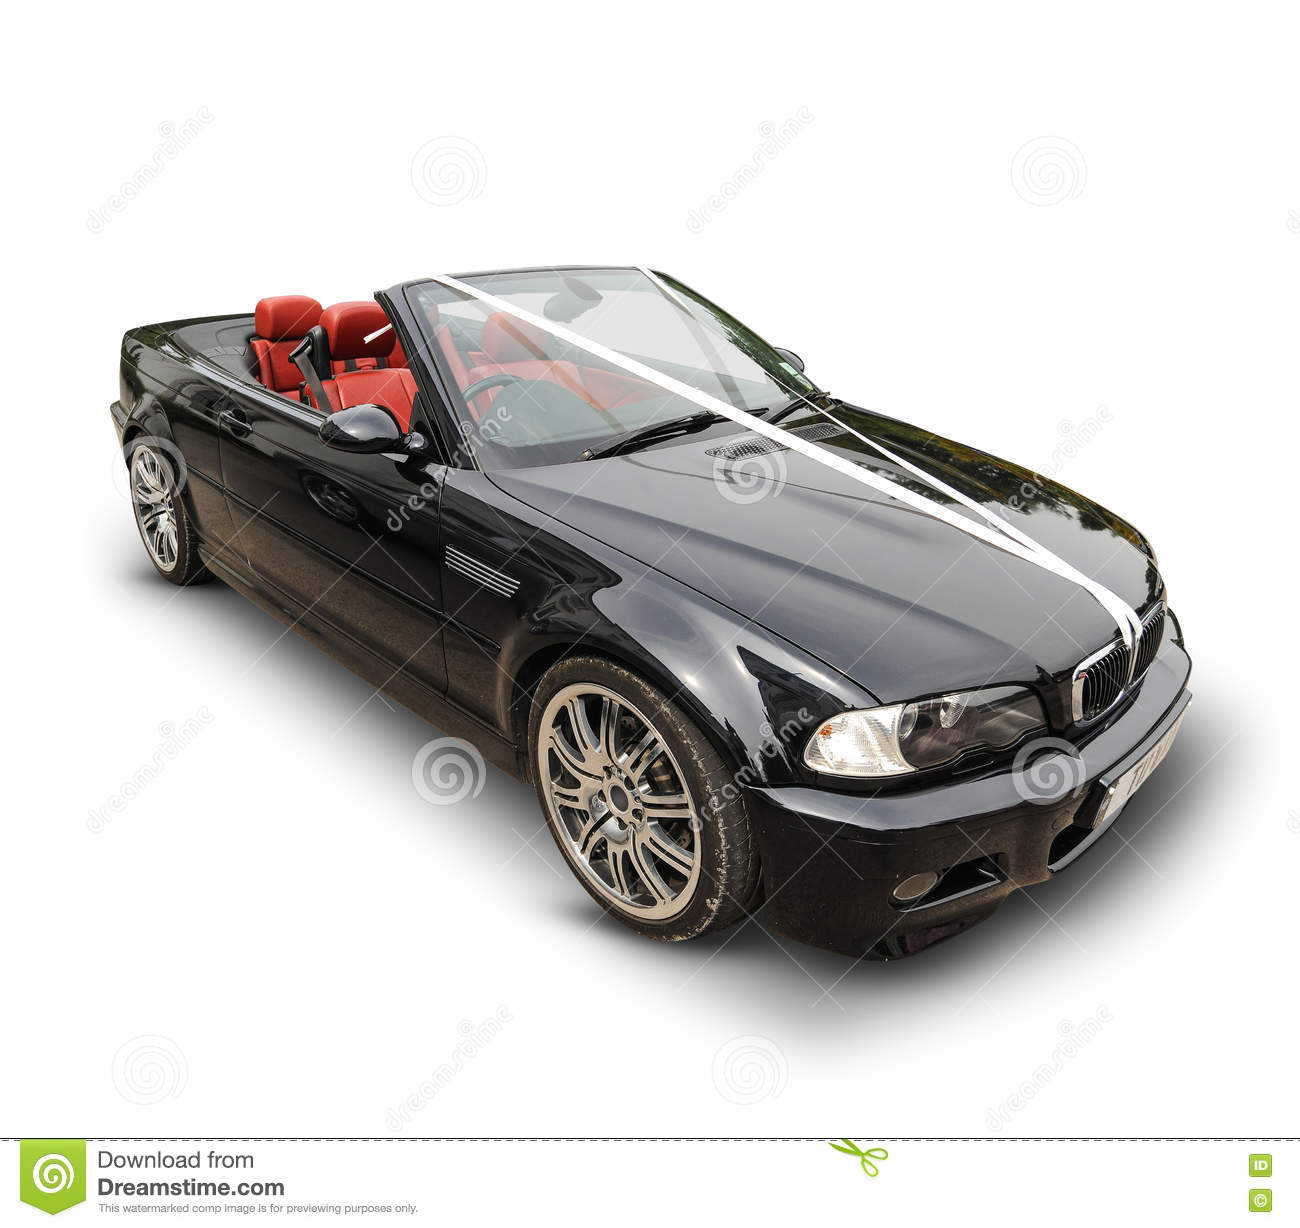 Bmw Sports Car: Black BMW Sports Car With White Ribbons Stock Photo